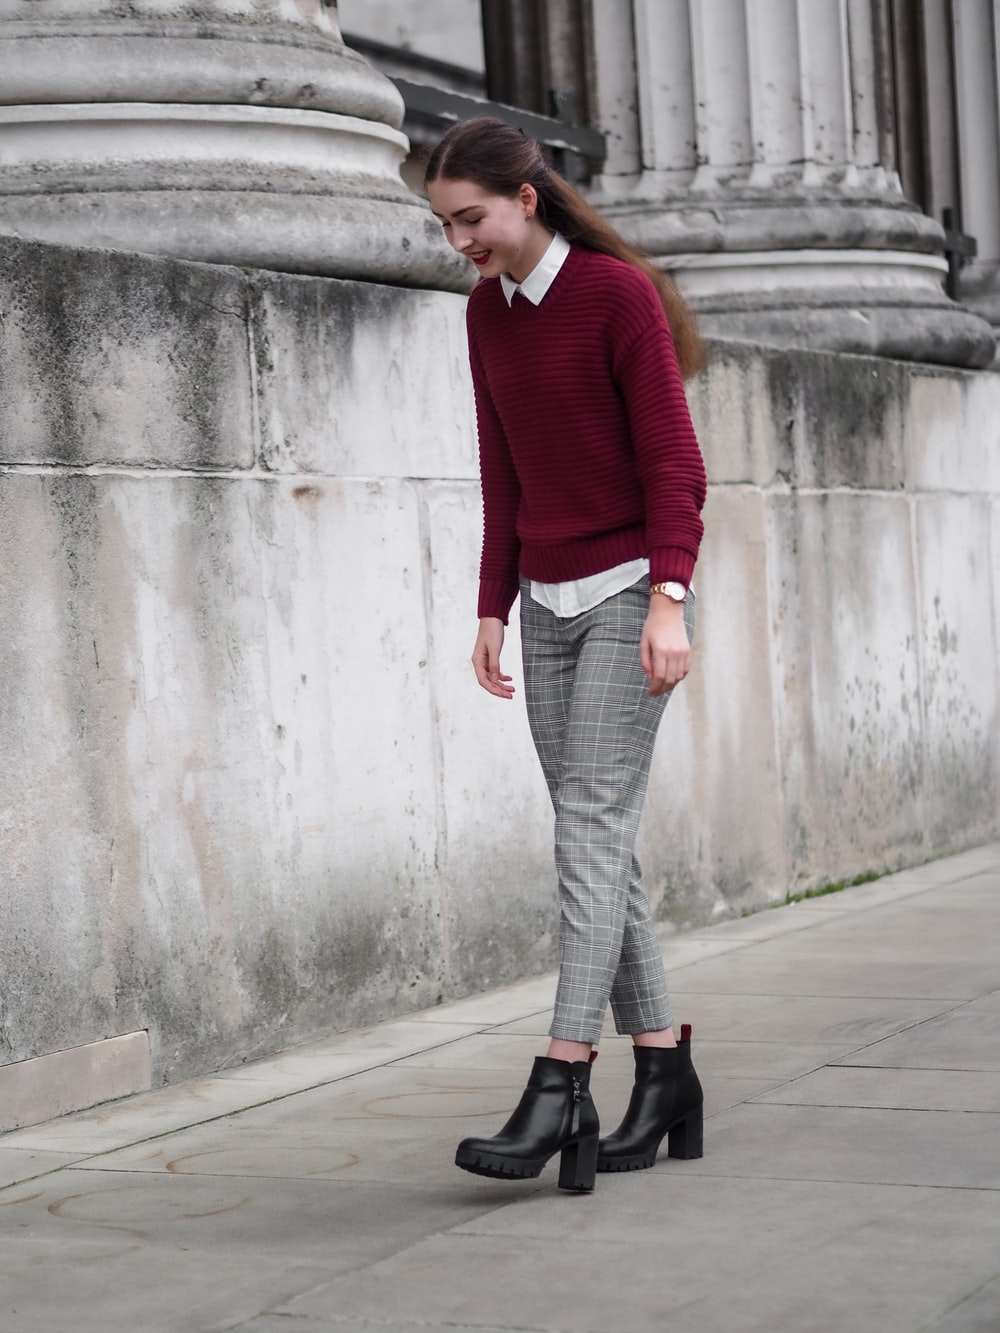 woman in red sweater and gray pants standing on sidewalk during daytime